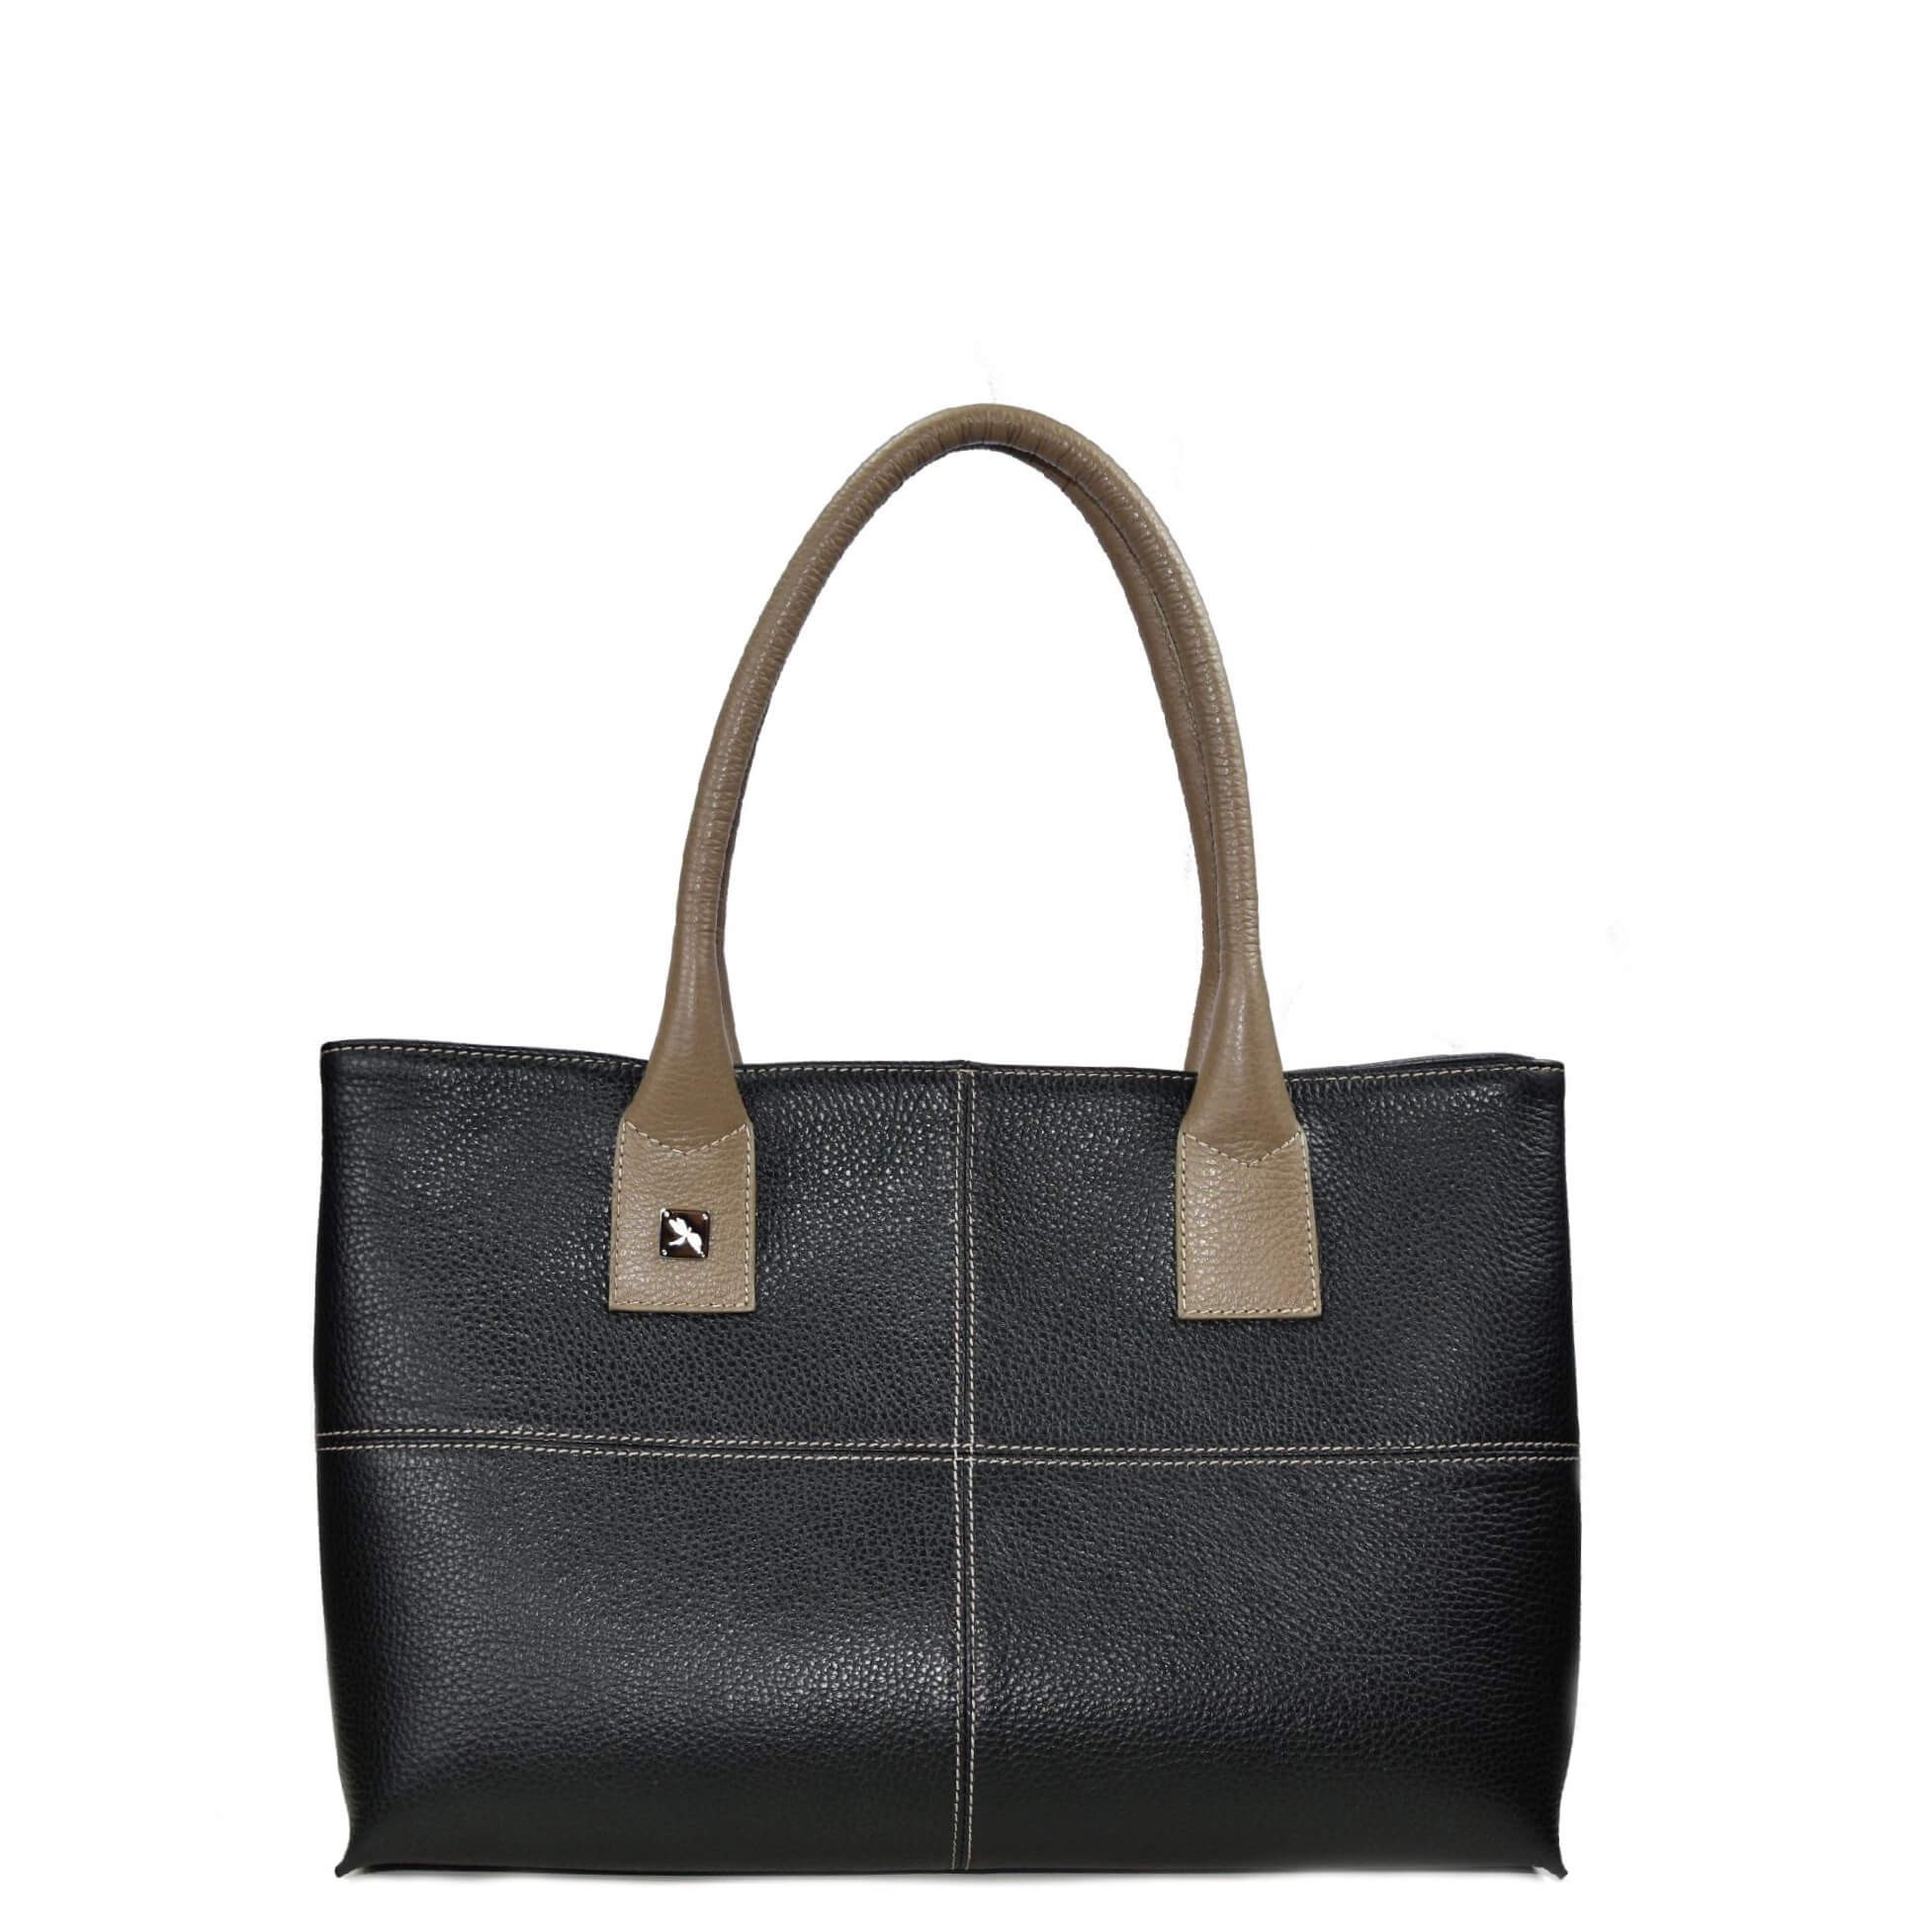 black and taupe tote bag